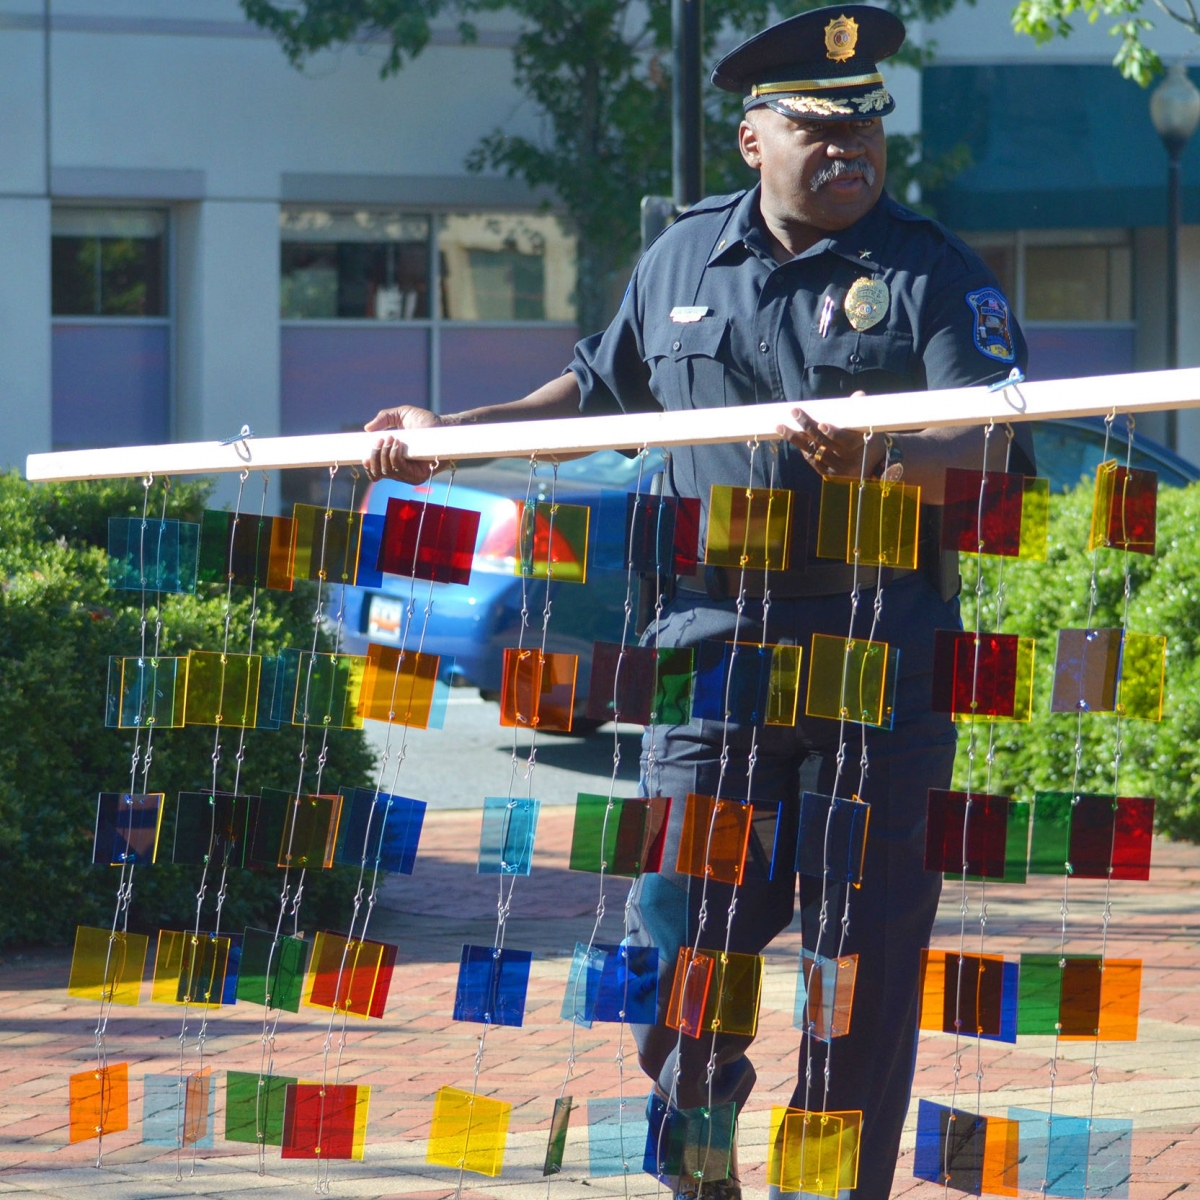 City of Spartanburg, Chief of Police Alonzo Thompson helping to assemble Downtown Mobile Suspension photo taken by Luke Connell, The Palladian Group.